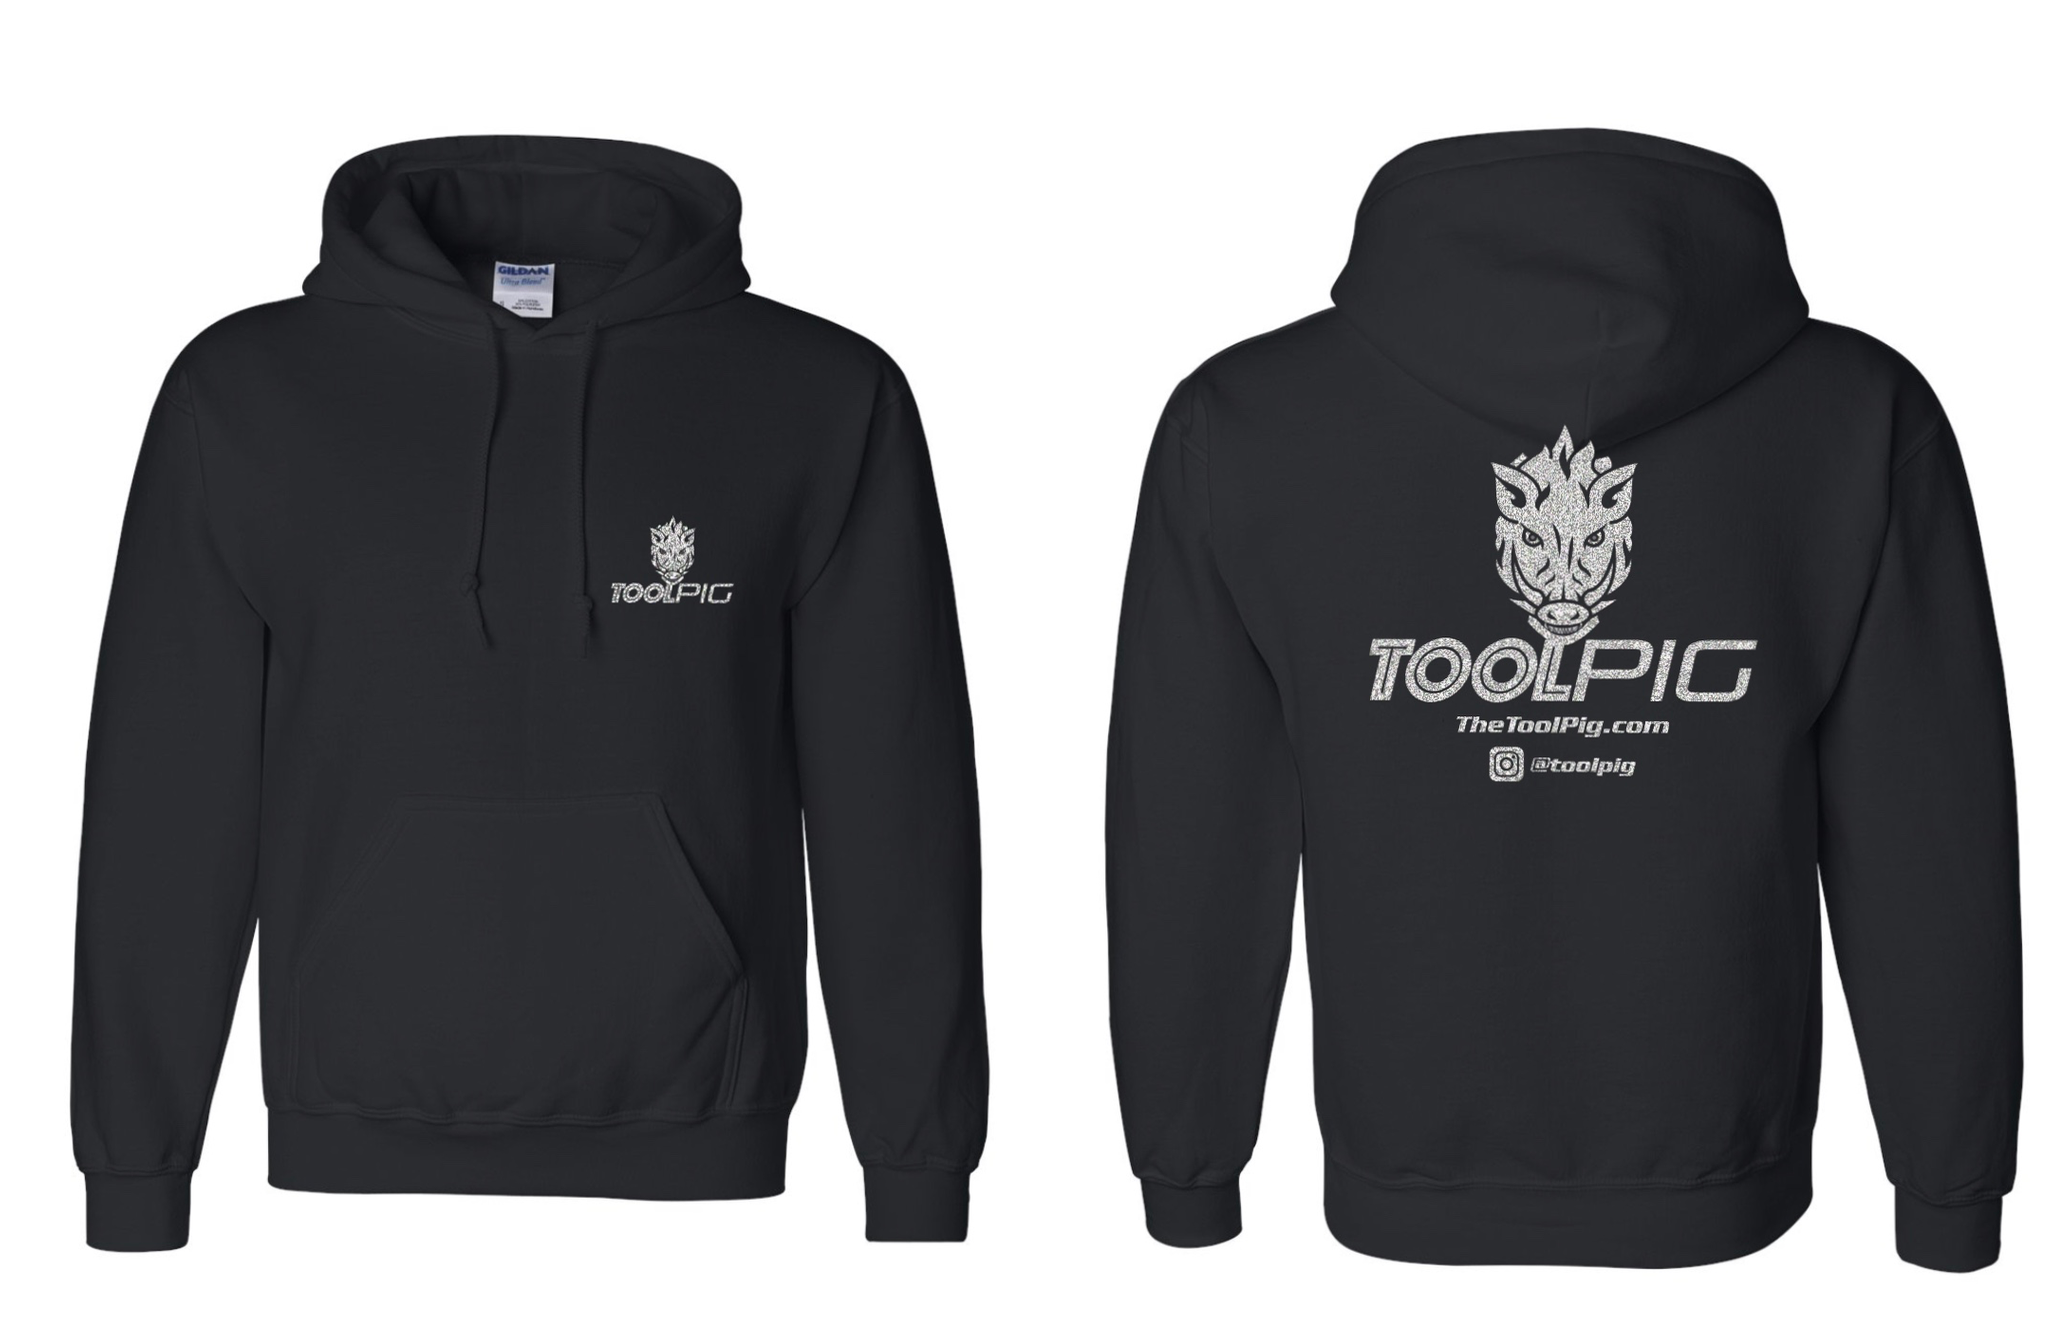 Toolpig T-Shirt and Hoodies Are Finally Here!